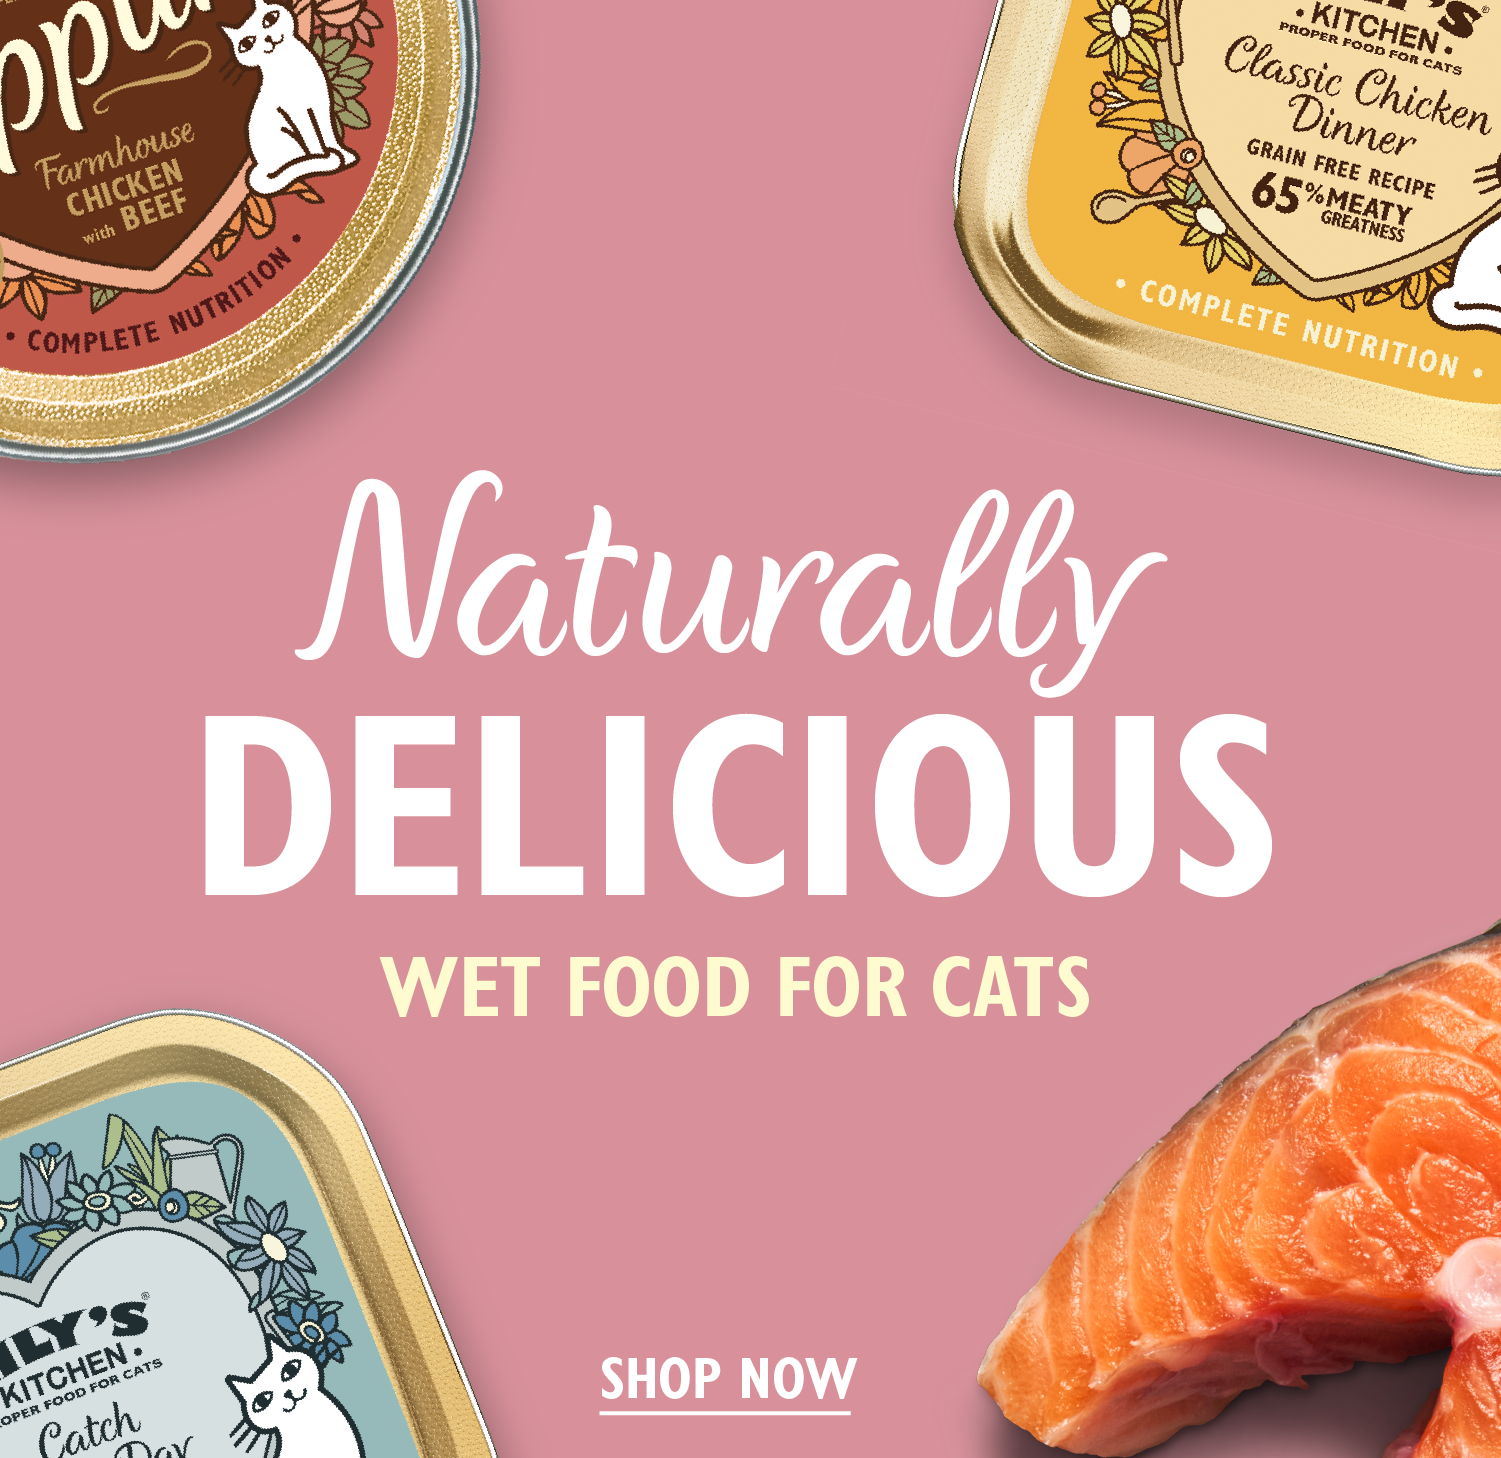 Wet Food for Cats